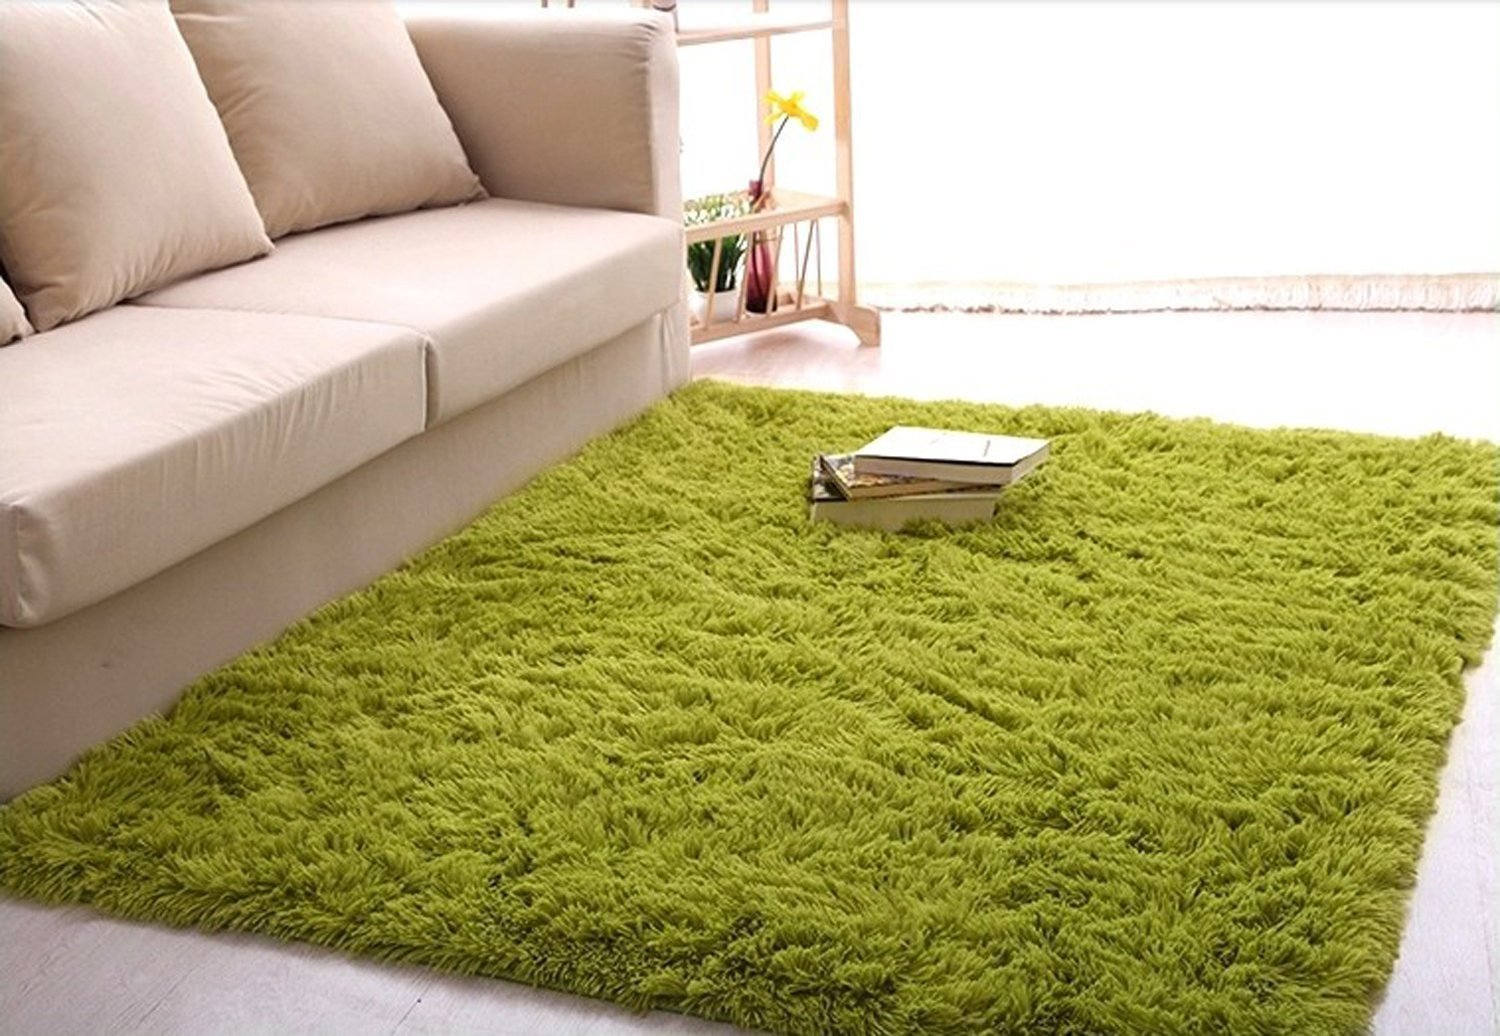 amazon modern excellent area of pertaining plush soft ideas unique pinterest in rugs best outstanding popular bedroom to decoration